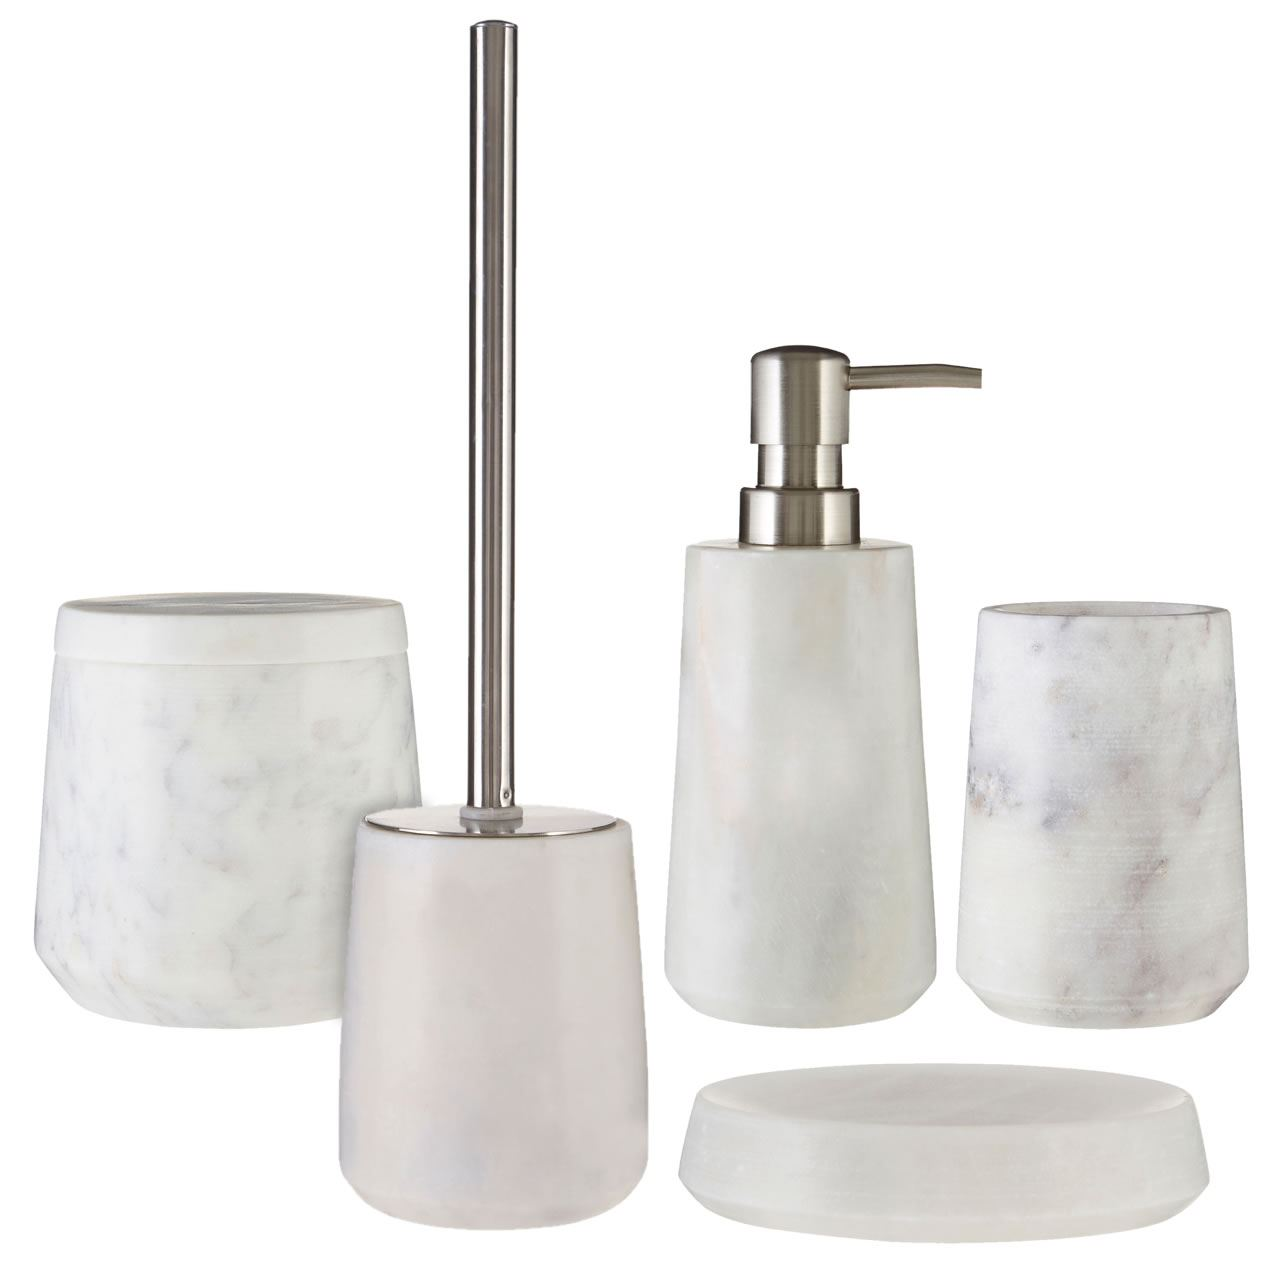 5 piece marble bathroom accessories set soap dish tumbler for Marble bathroom accessories